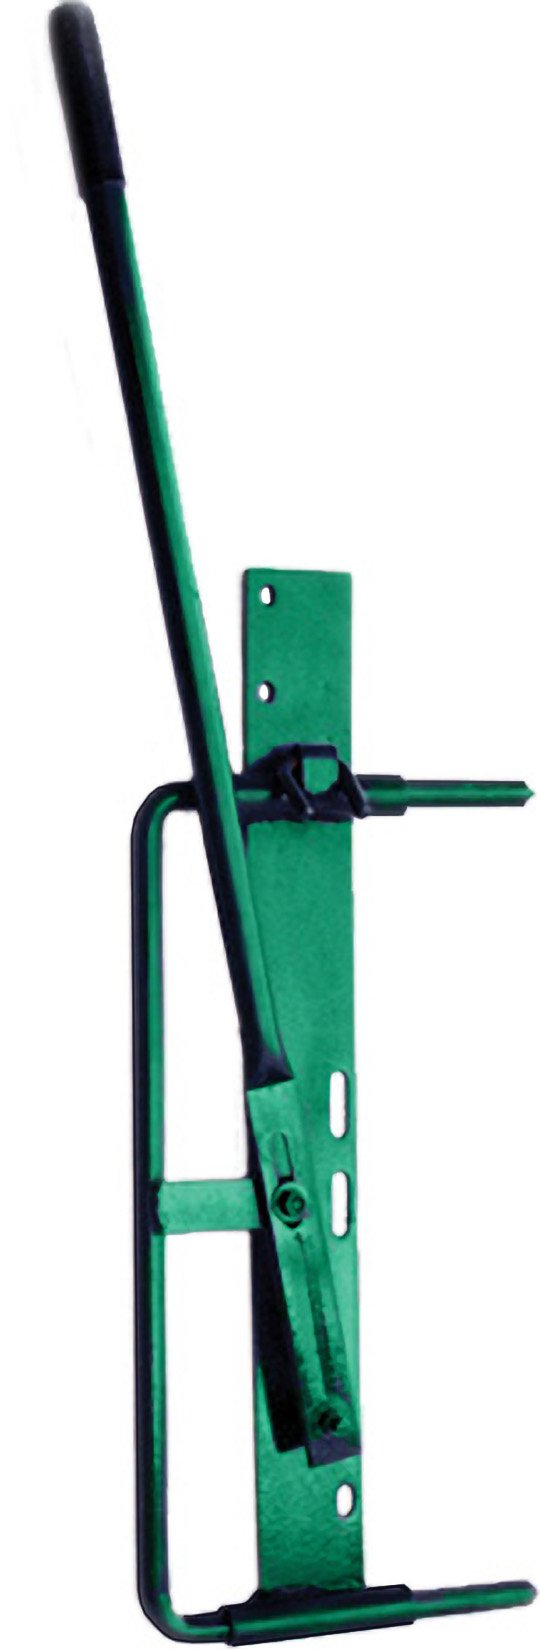 Behlen Country 44110132 Green Double Piston Lever Latch